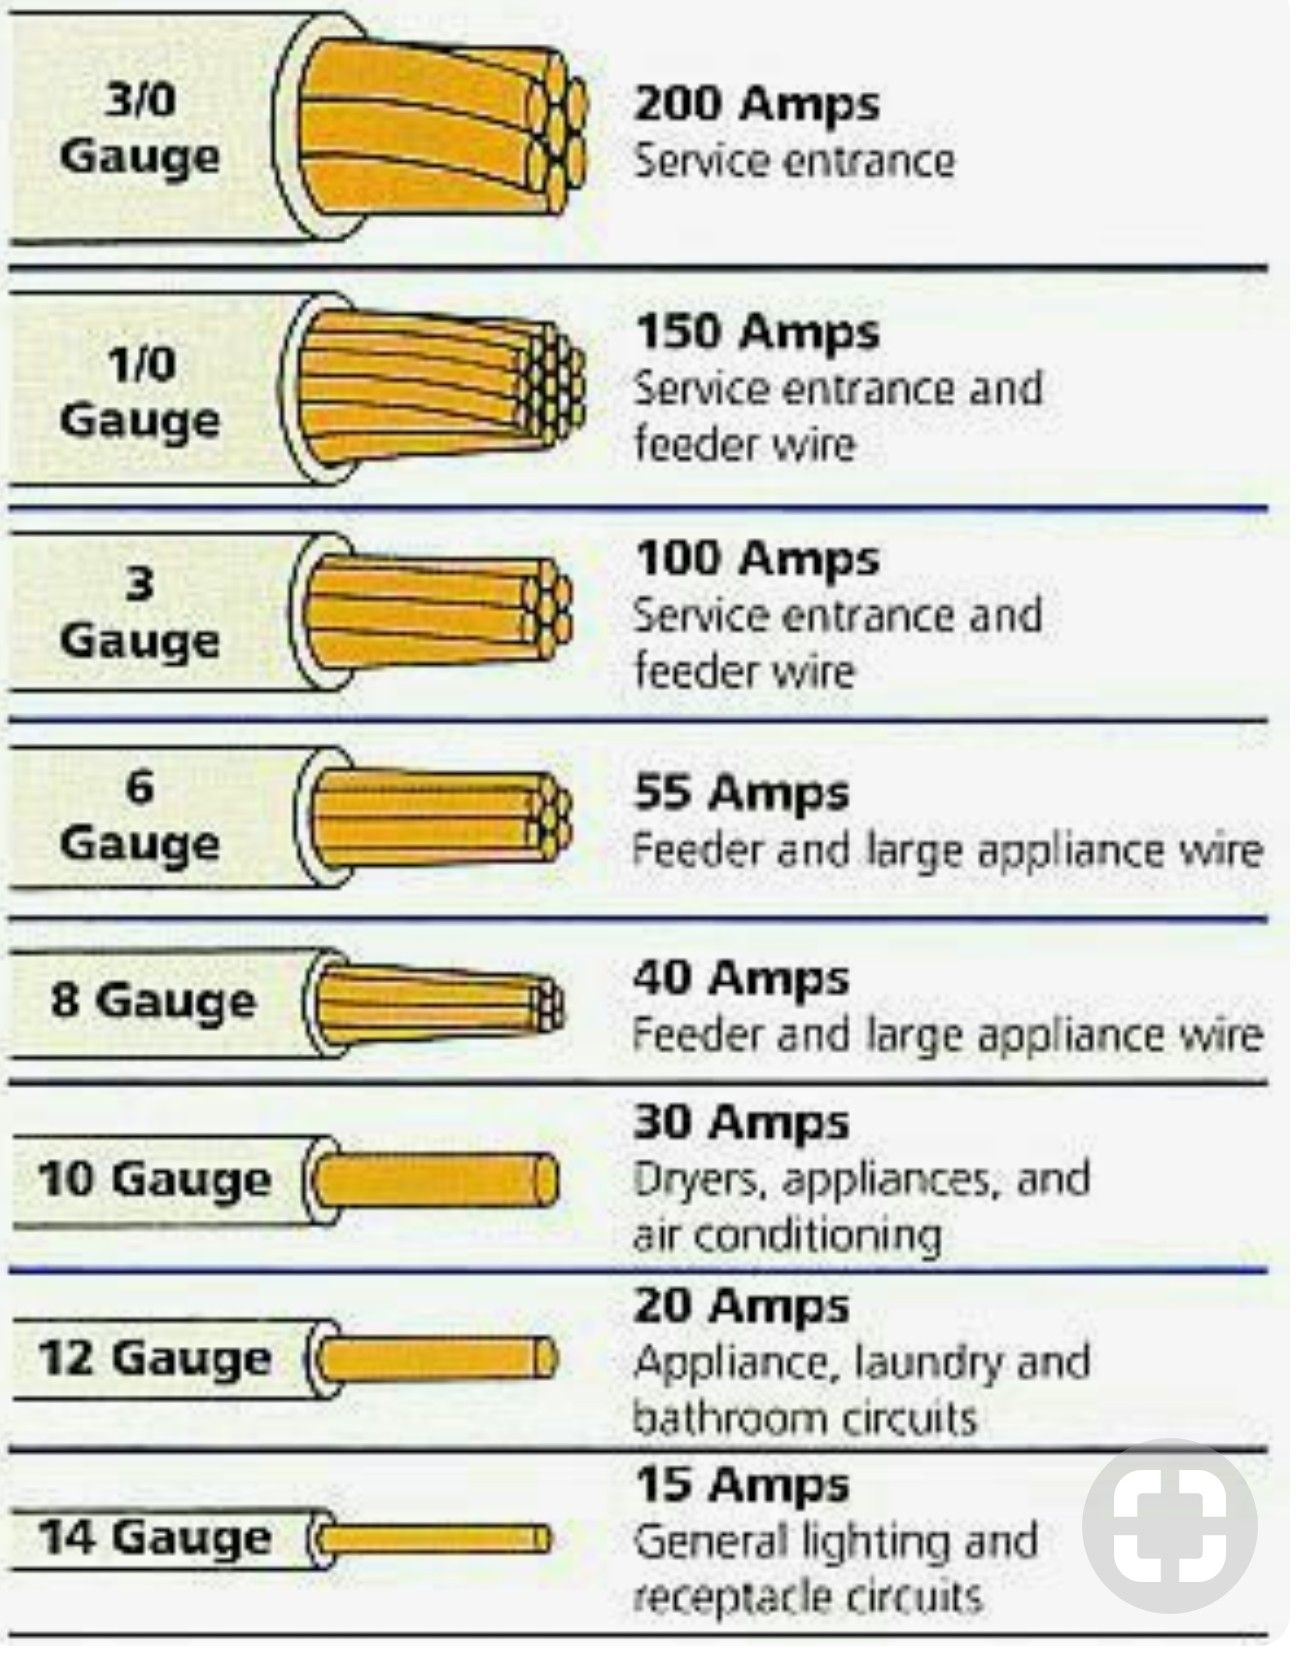 medium resolution of a handy wiring guide i wired my house almost exclusively with the 12 gauge wire for general receptacle and lighting circuits though